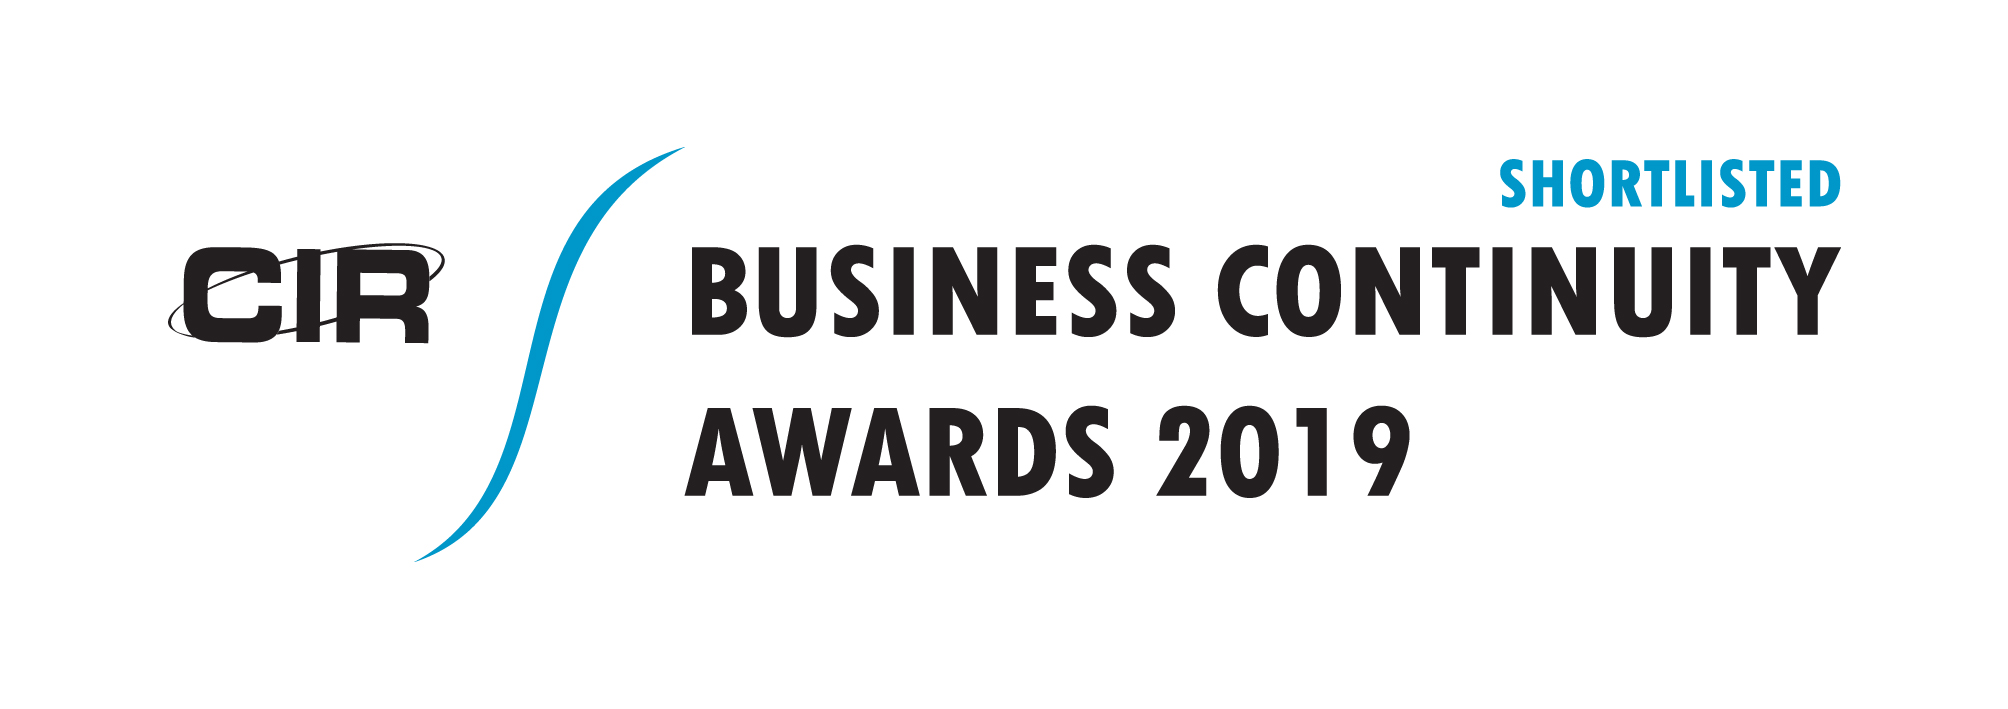 bcawards2019_Shortlisted.jpg